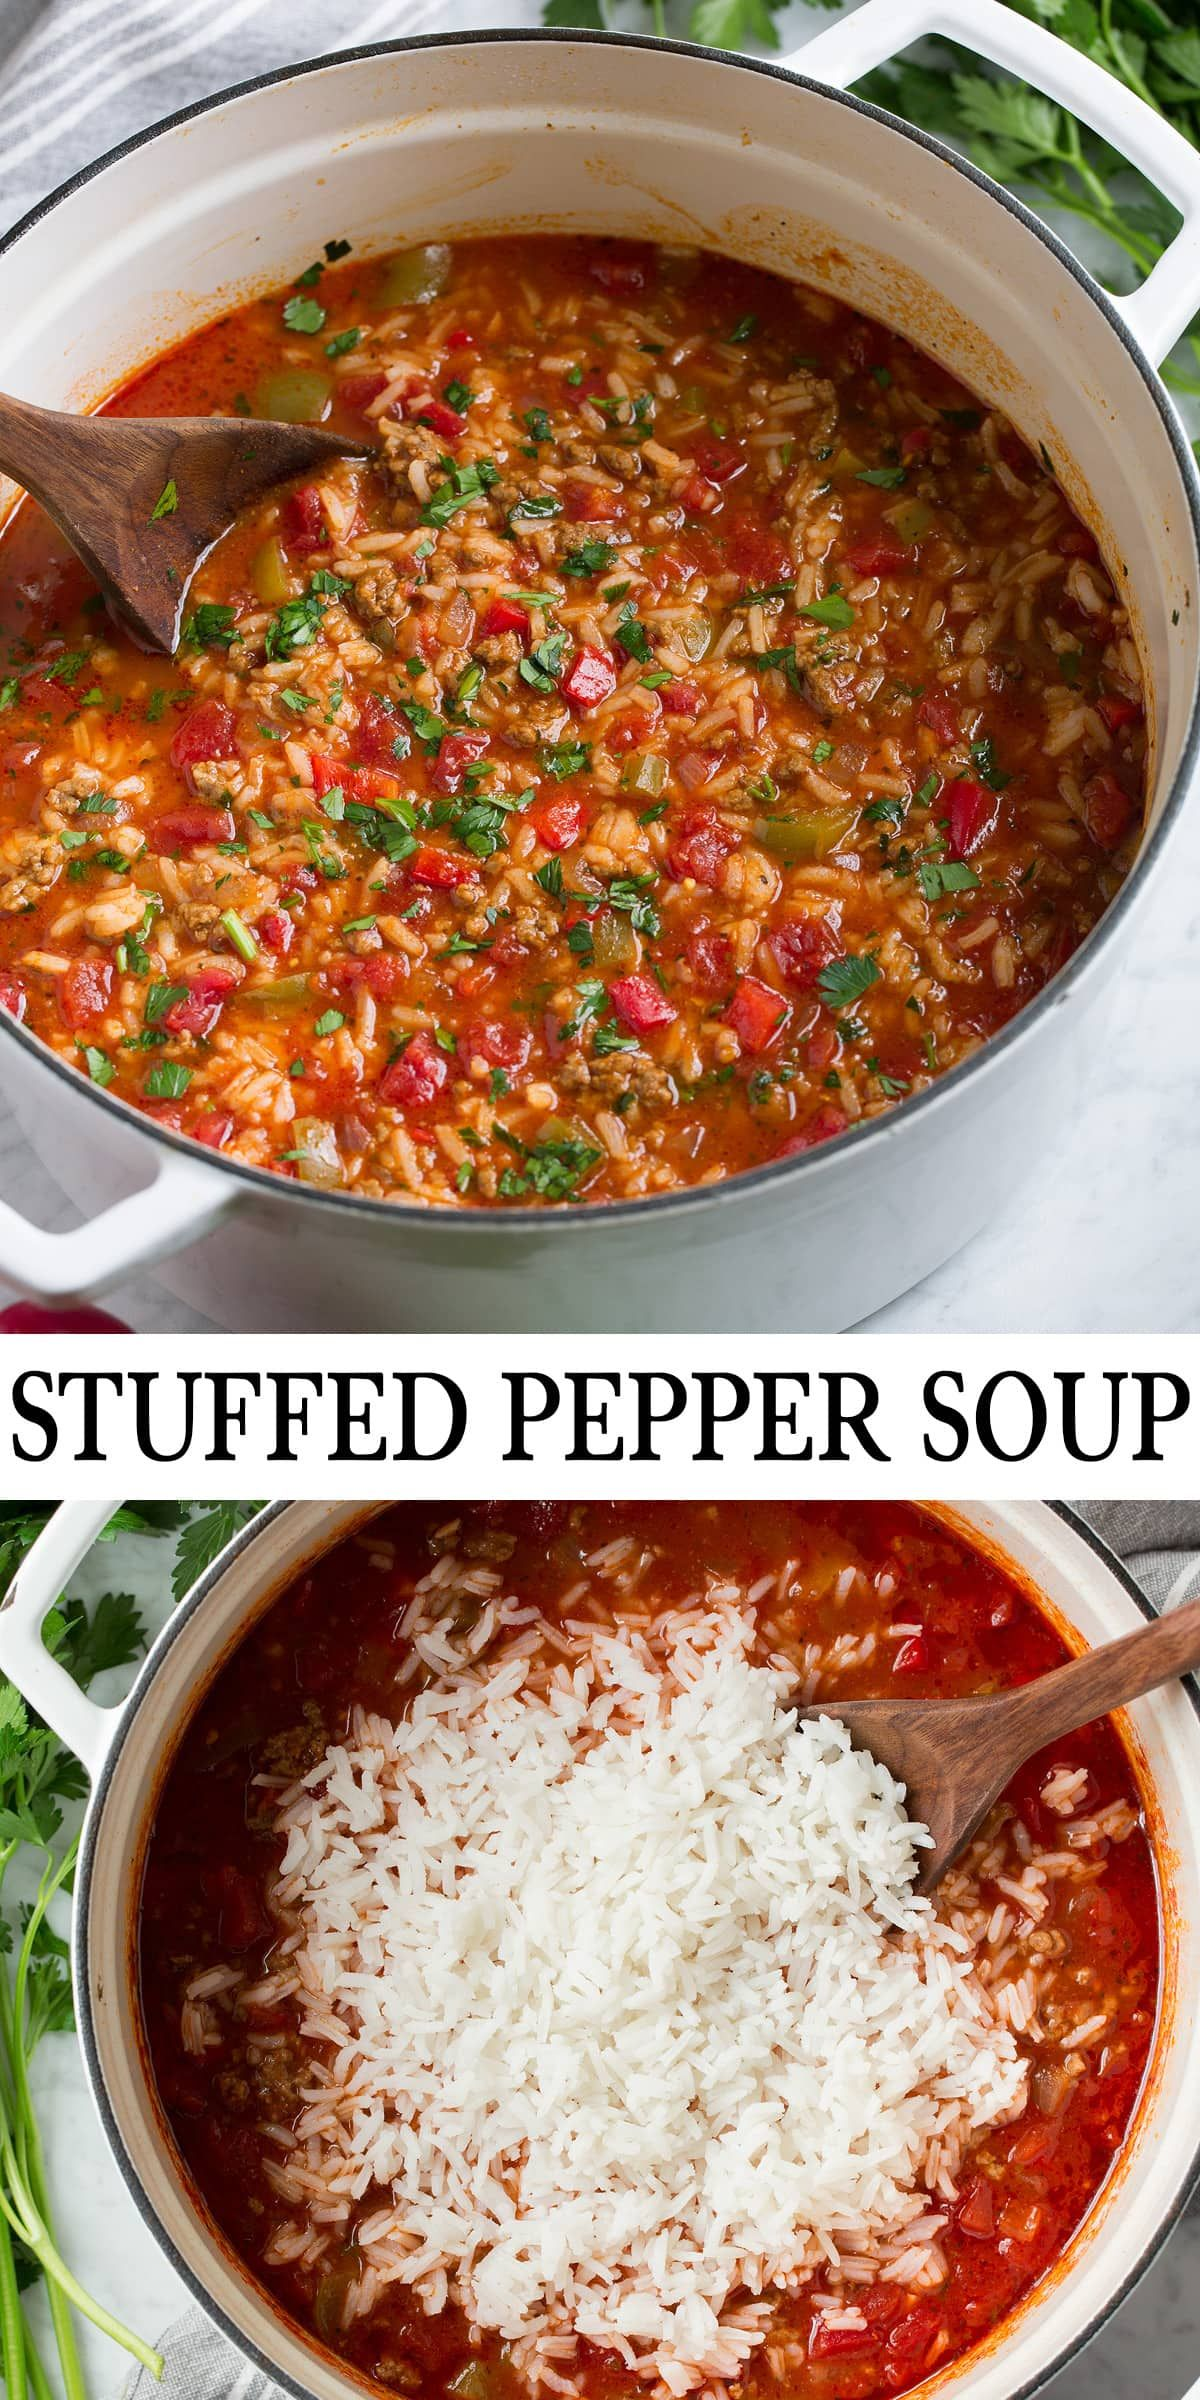 Stuffed Pepper Soup An Easy Hearty And Comforting Stuffed Pepper Soup That S So Easy To Make And Something In 2020 Stuffed Peppers Stuffed Pepper Soup Soup Recipes